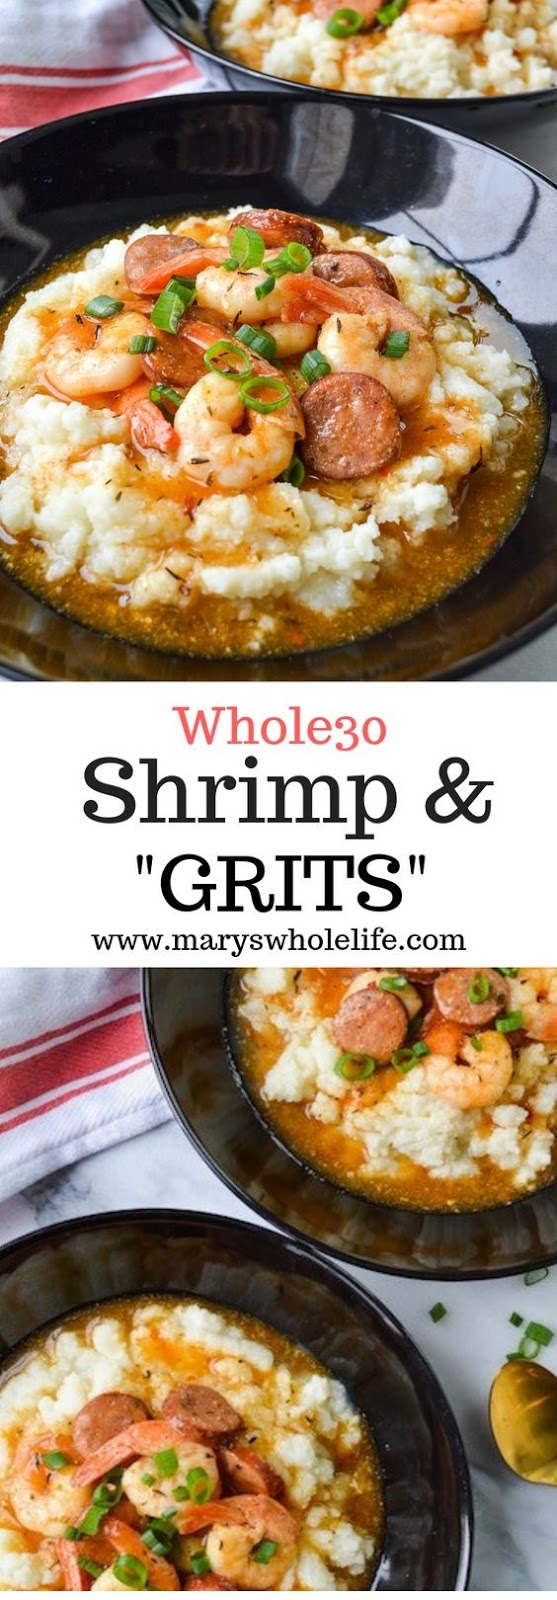 Whole30 Shrimp & (Grits)